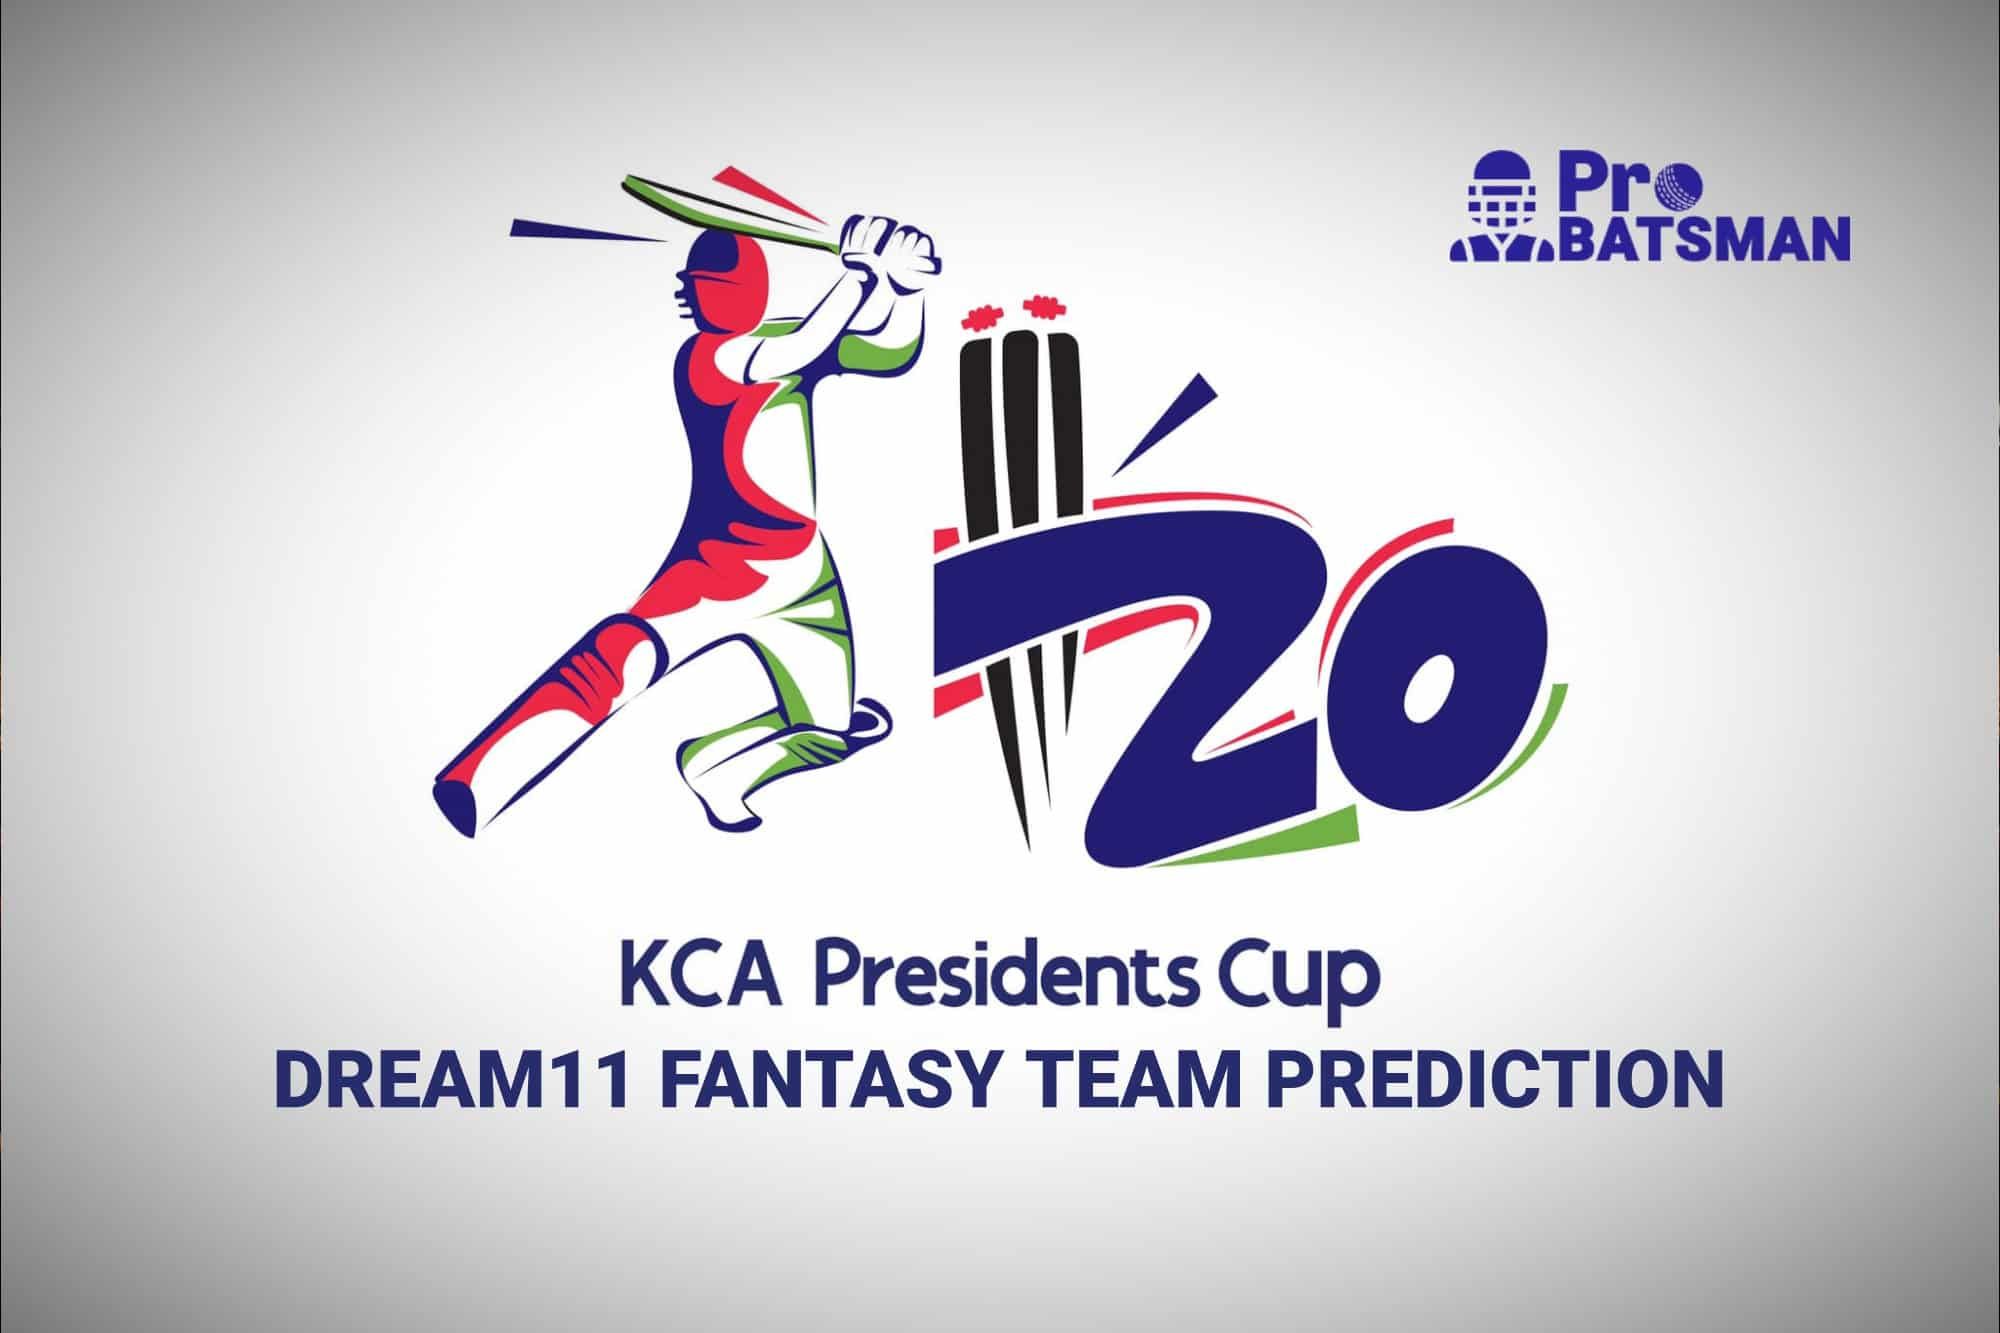 KCA Presidents Cup 2021 Dream11 Prediction Fantasy Cricket Tips